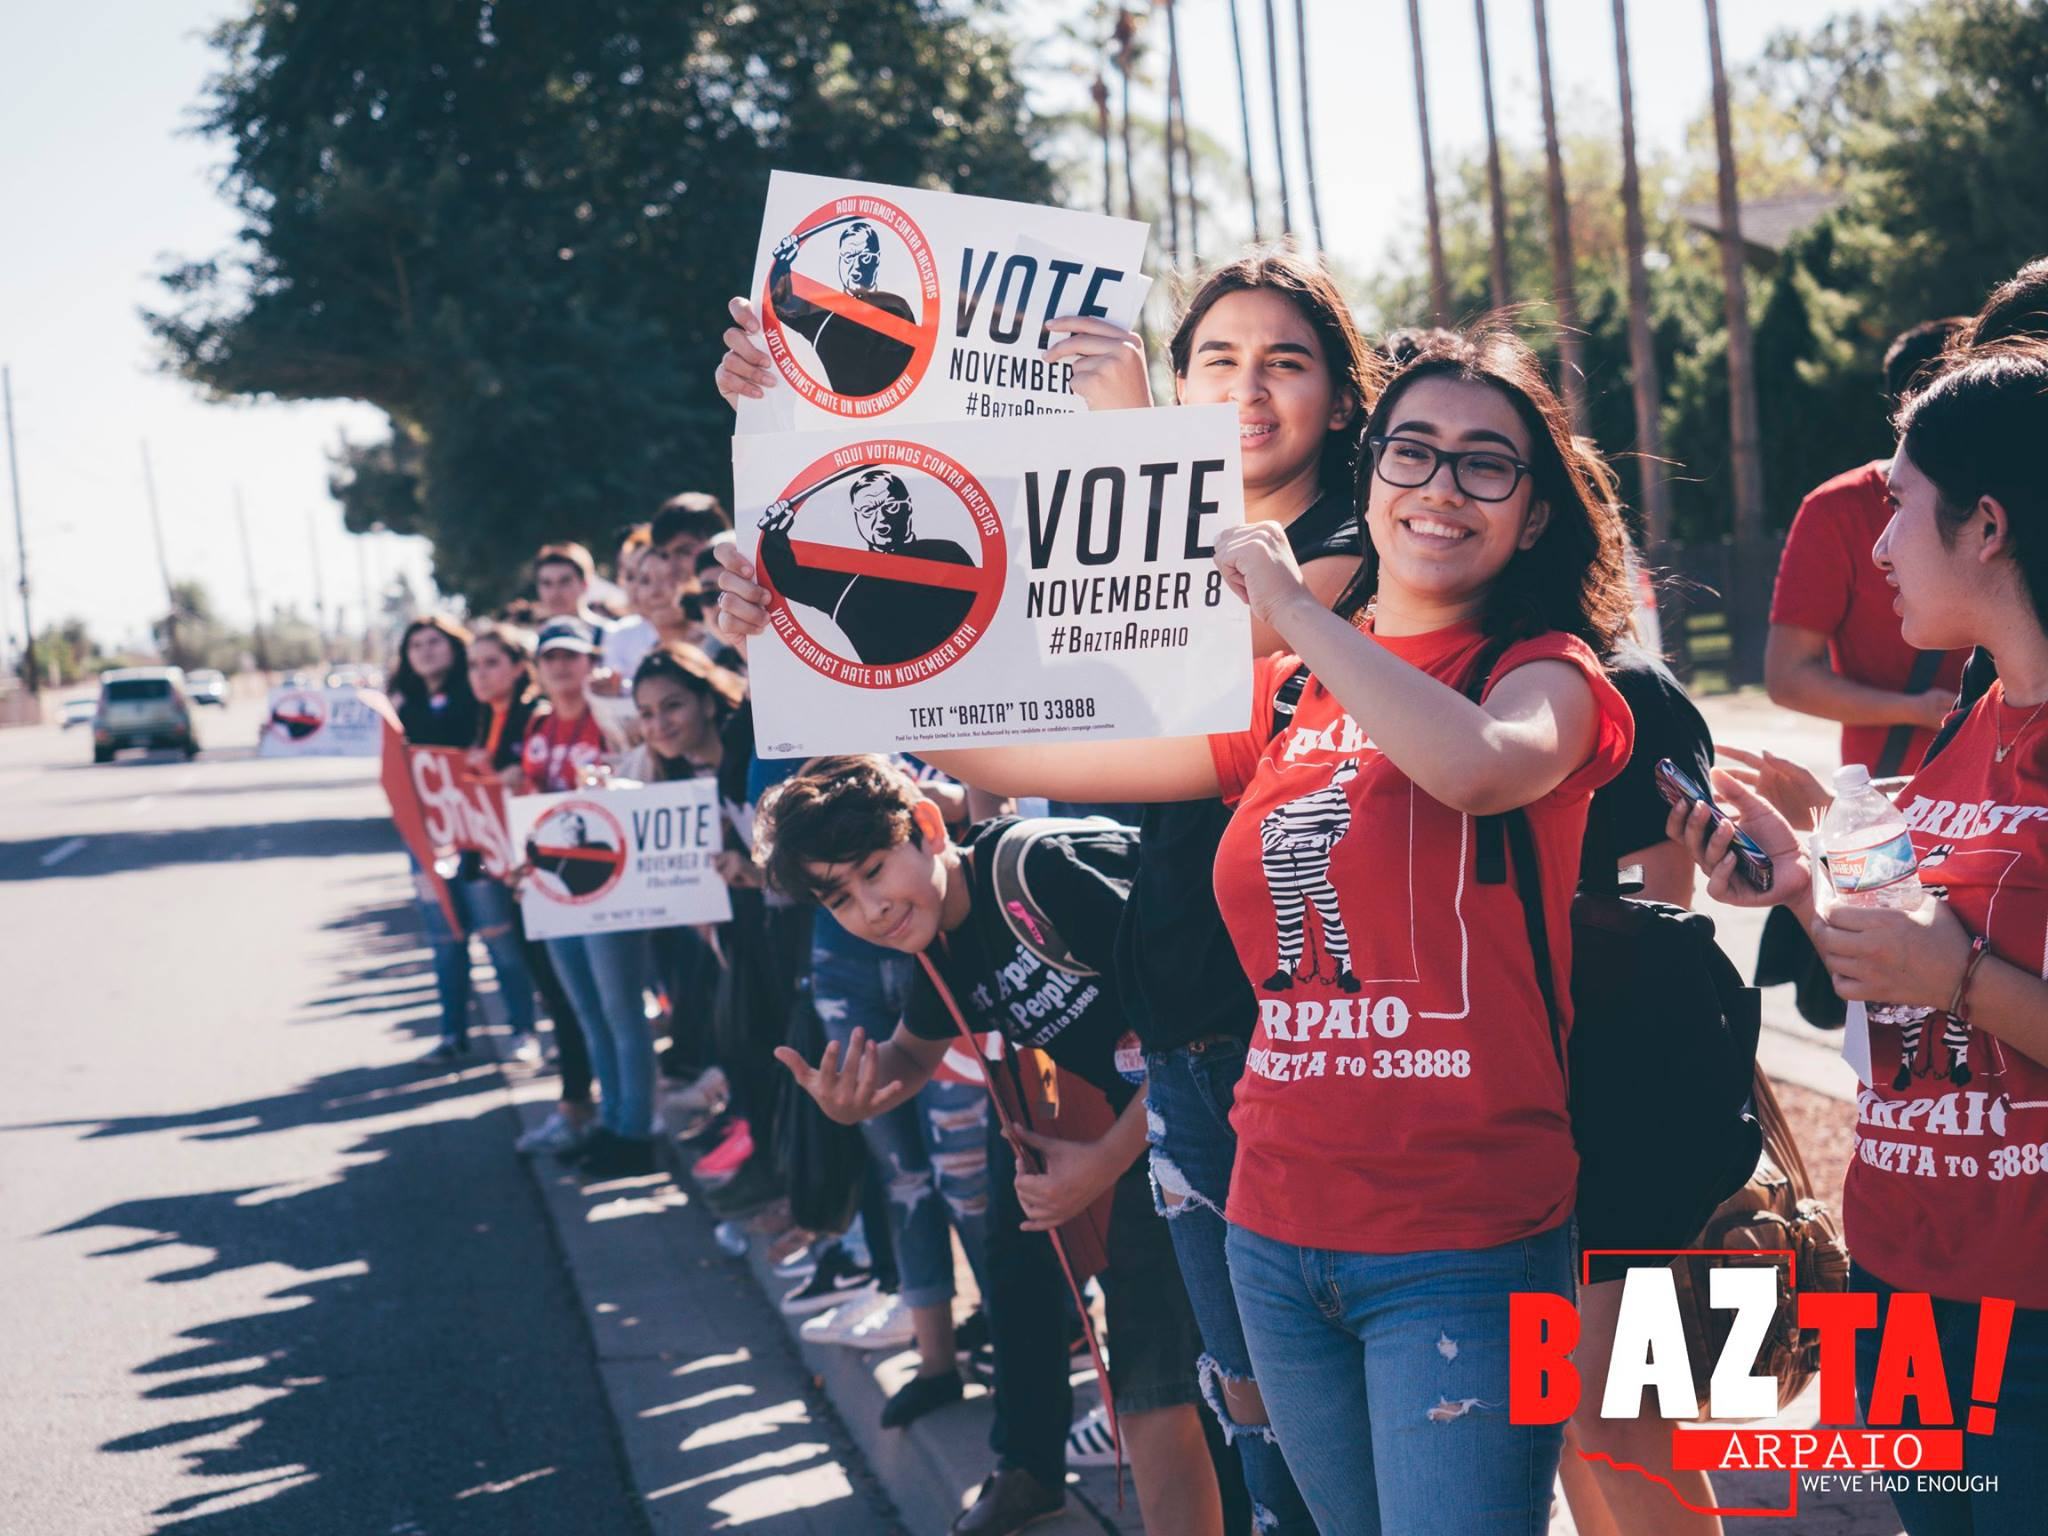 Getting out the vote to stop Joe Arpaio